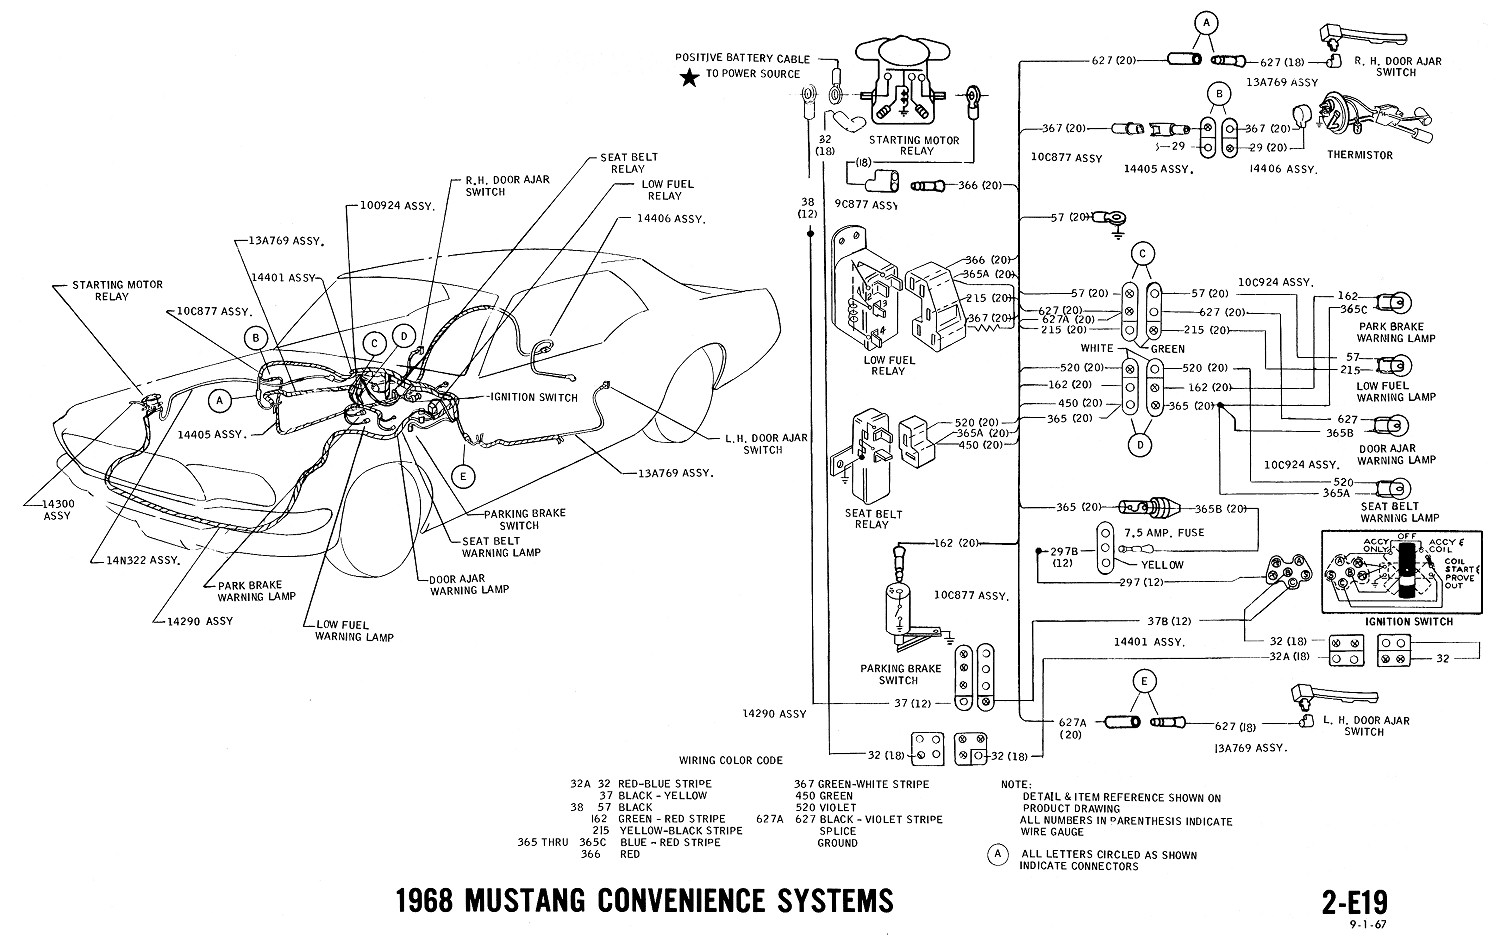 1968 Mercury Cougar Turn Signal Wiring Diagram. 1968